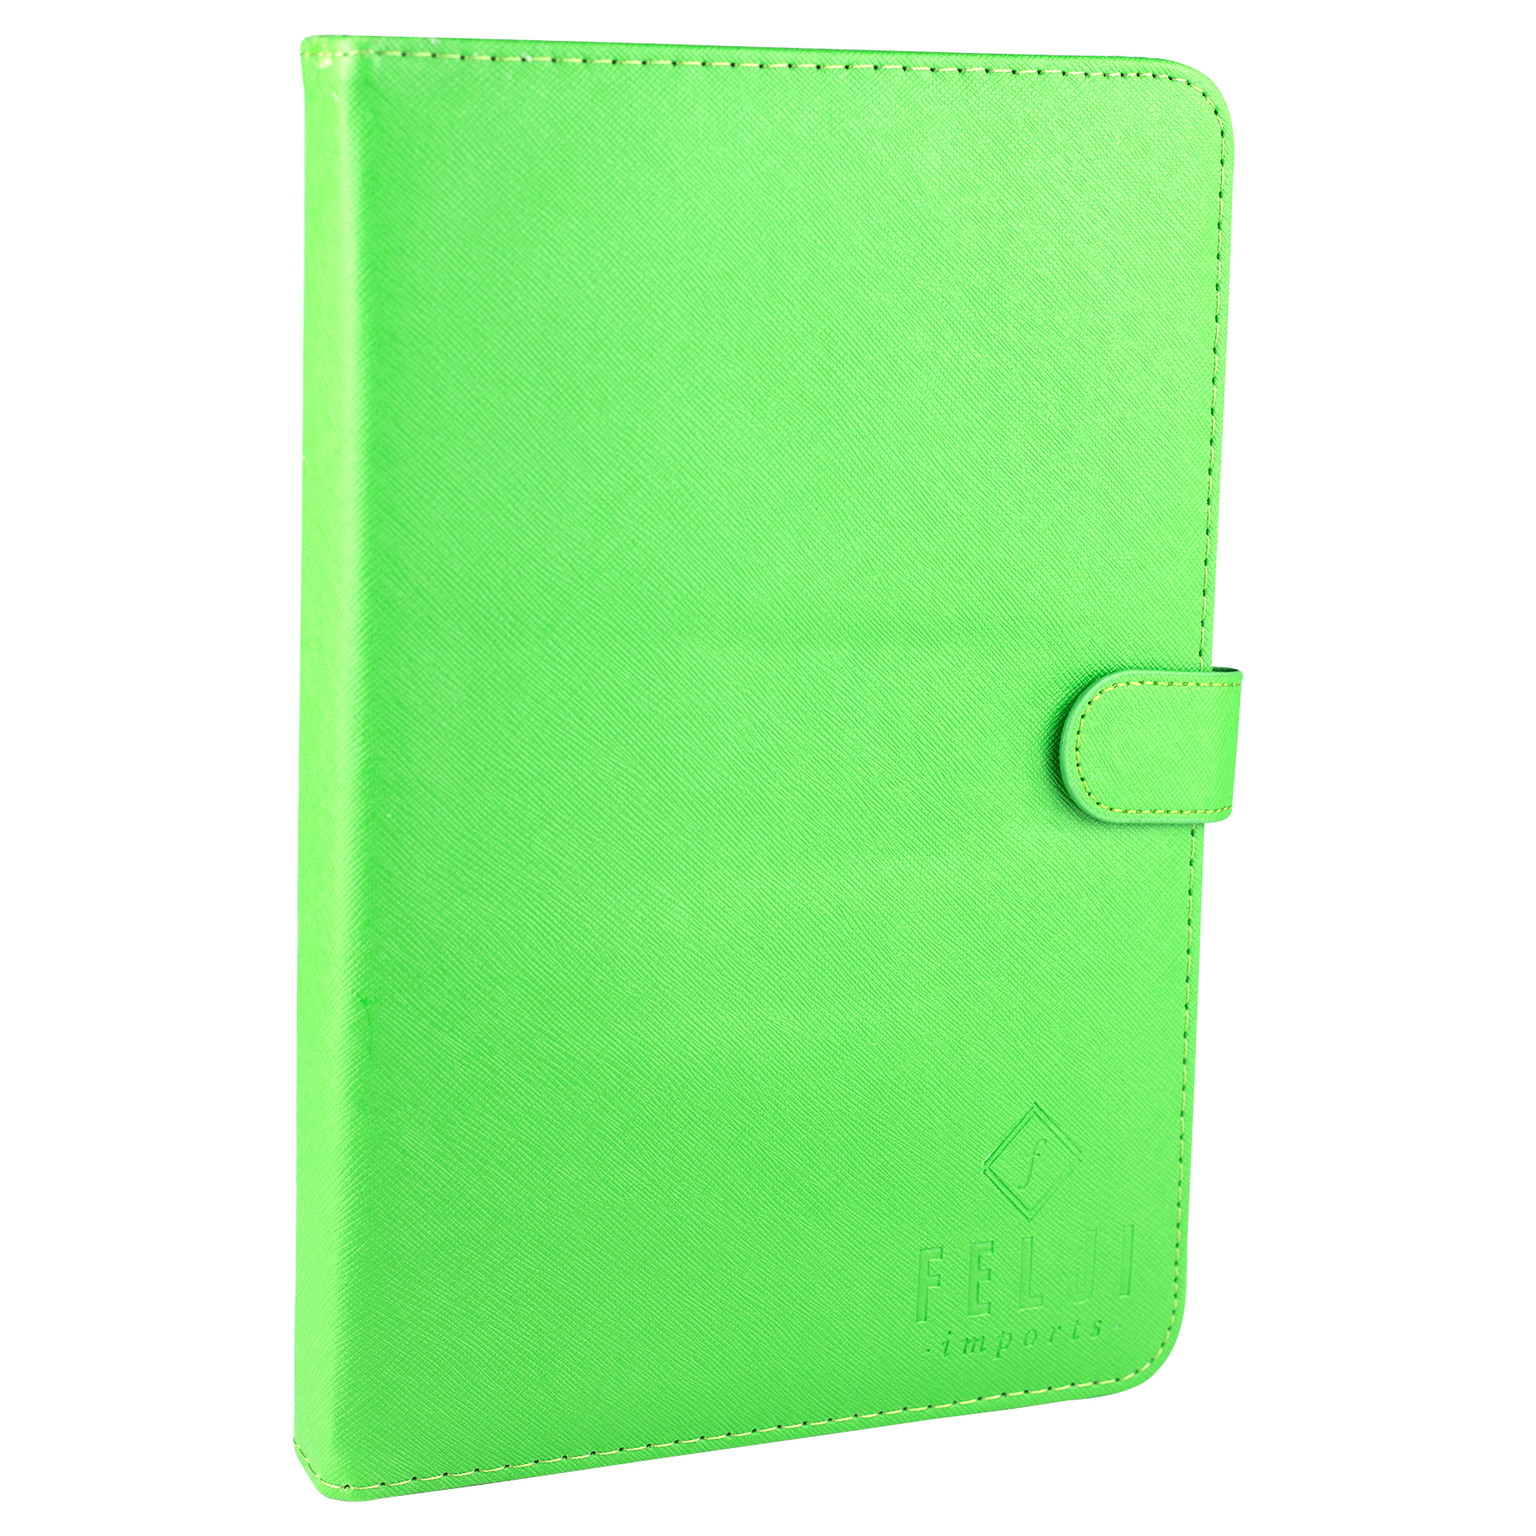 Felji Green Stand Leather Case Cover for Android Tablet 7-Inch Universal w/ USB Keyboard